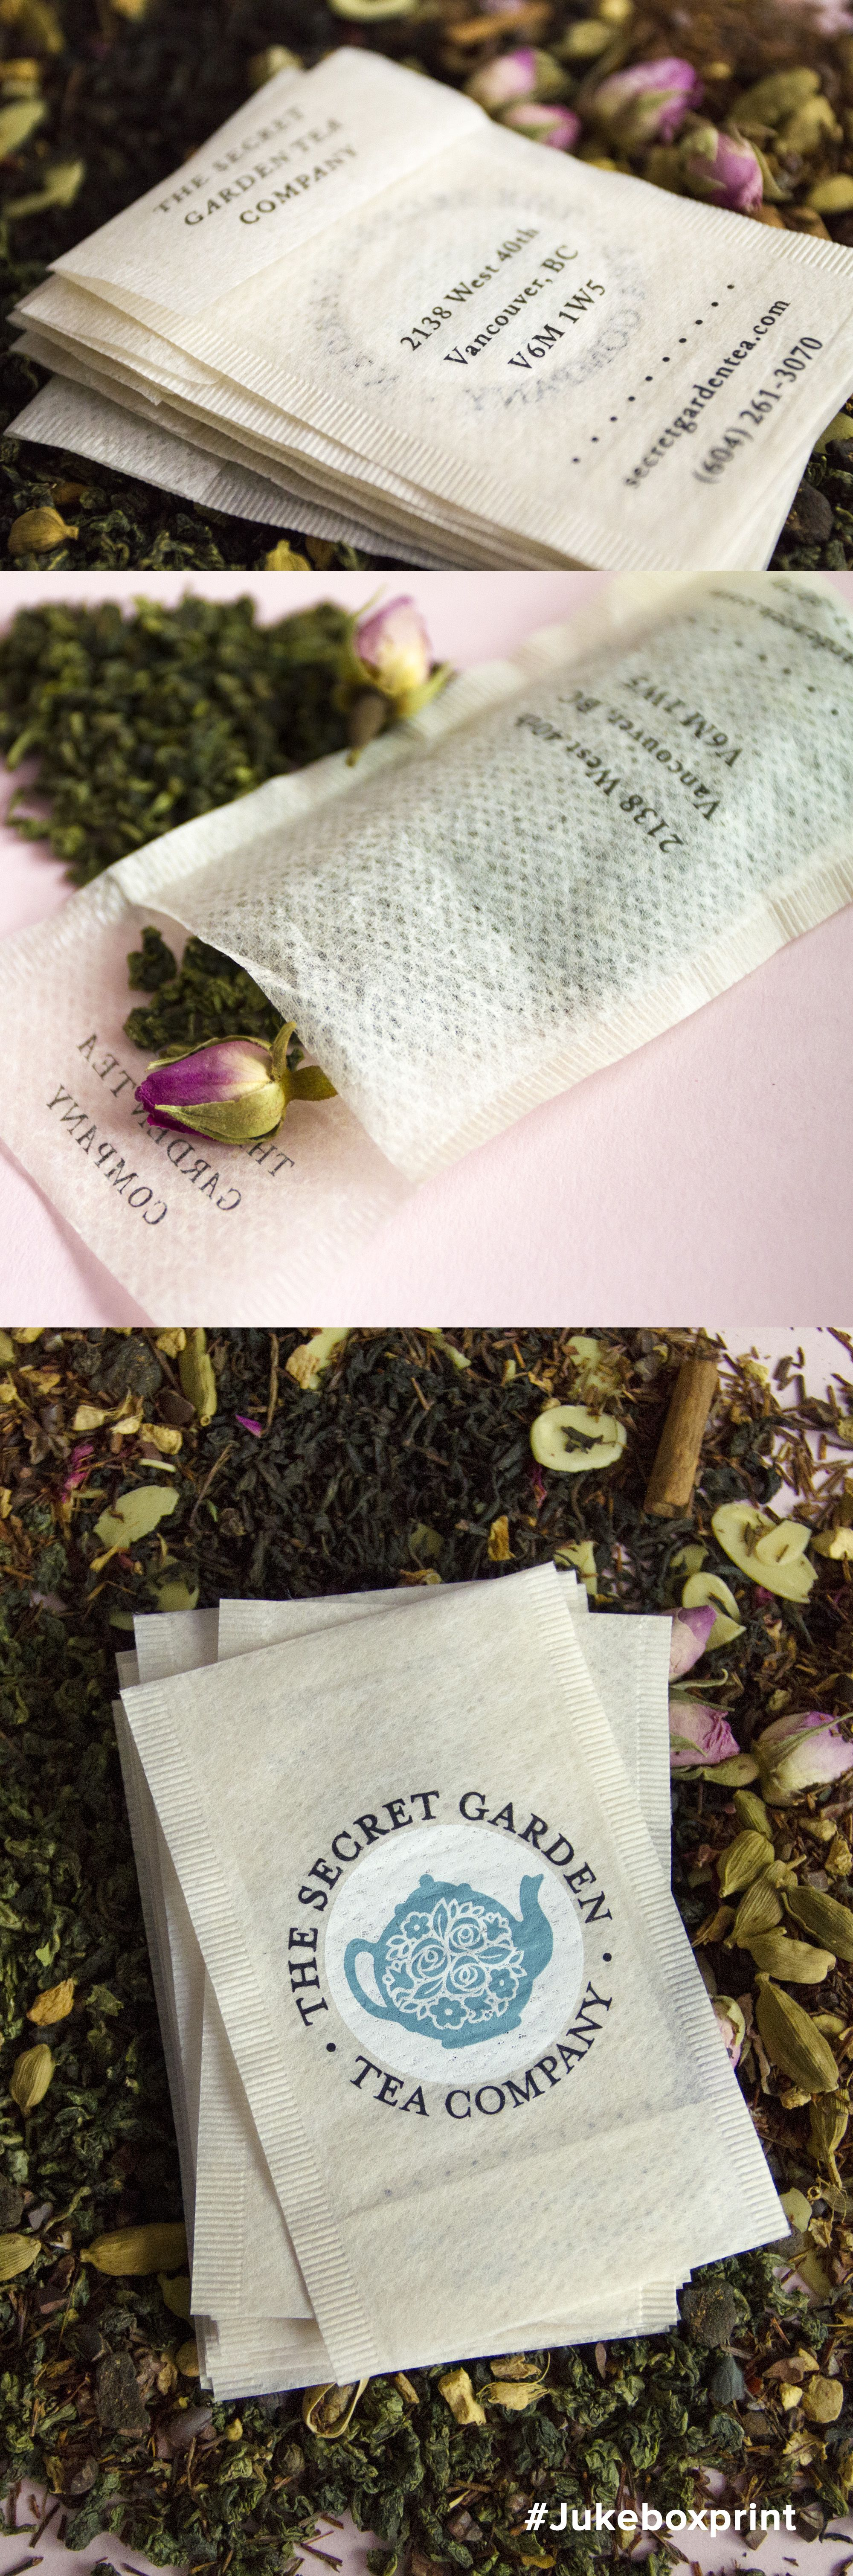 Carefully Handcrafted Business Cards printed on real Tea Bags